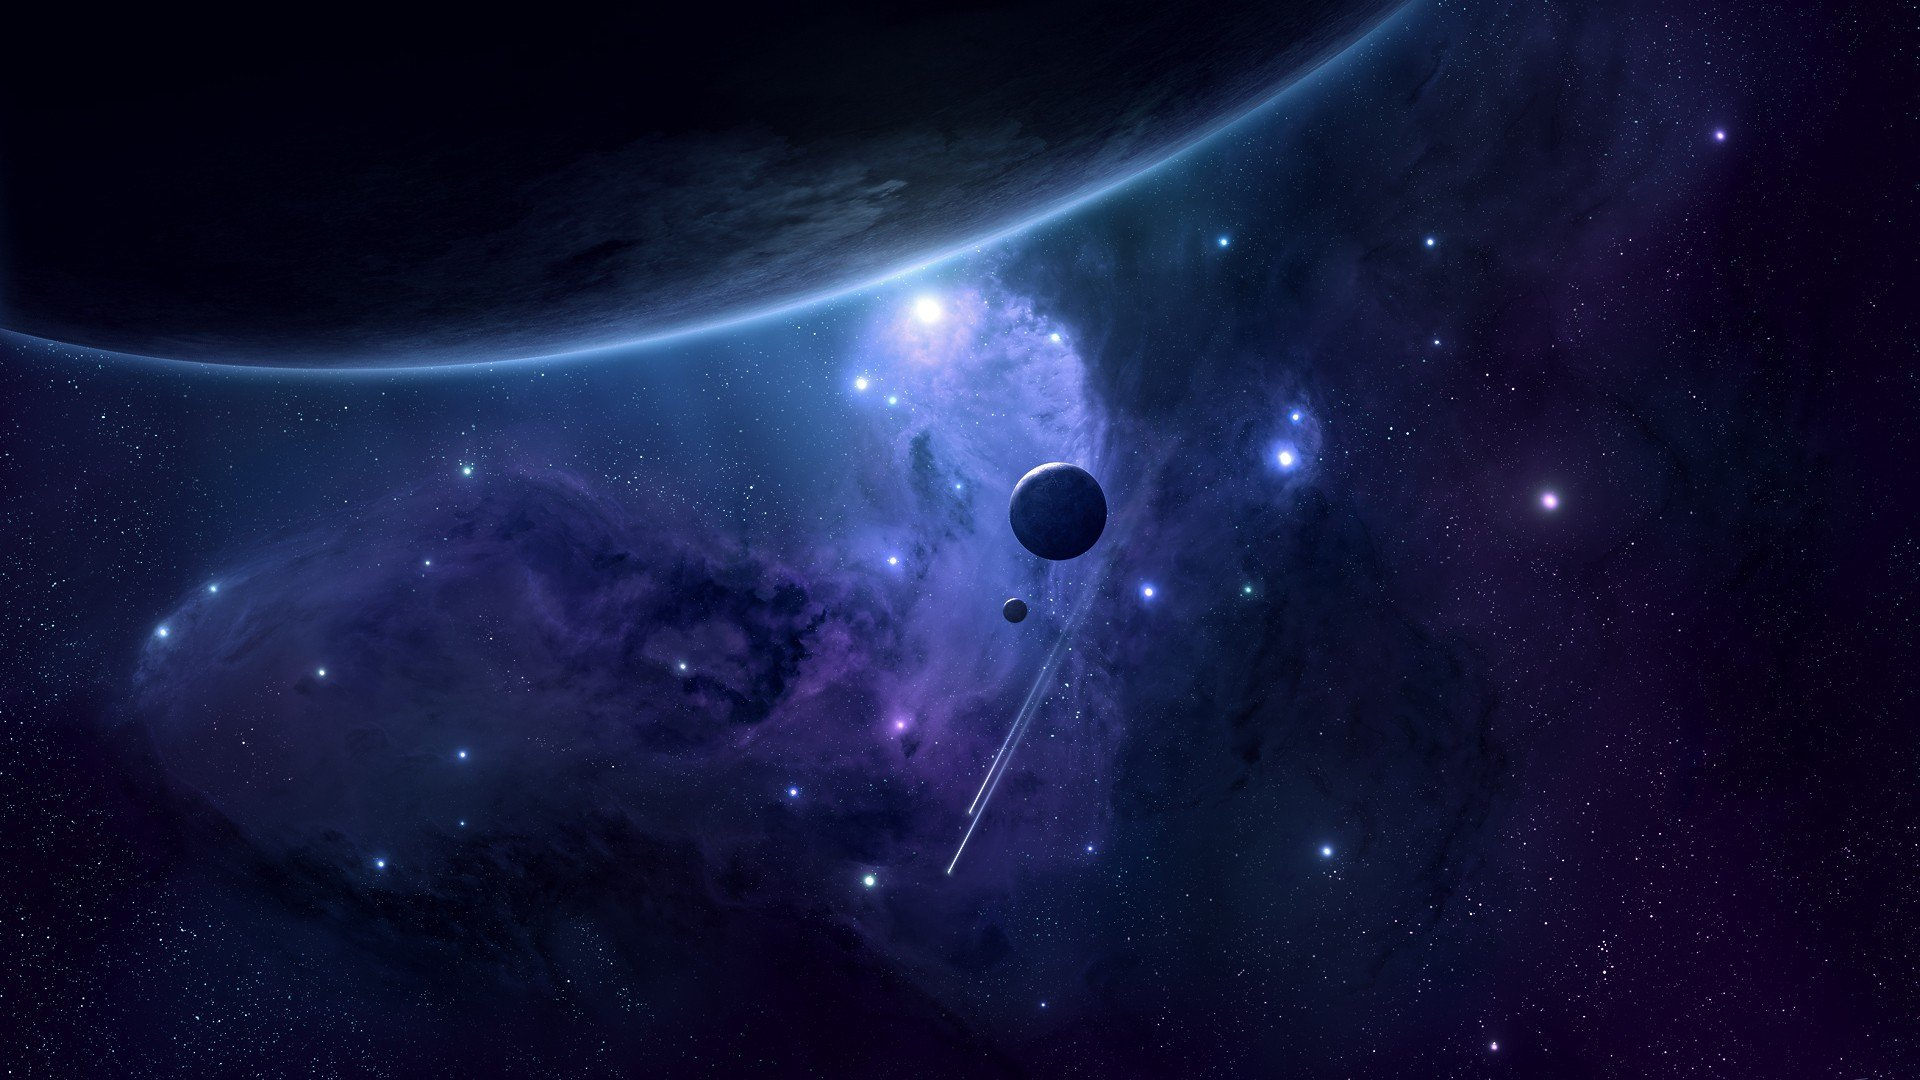 81 HD Cosmic wallpapers for your mobile devices